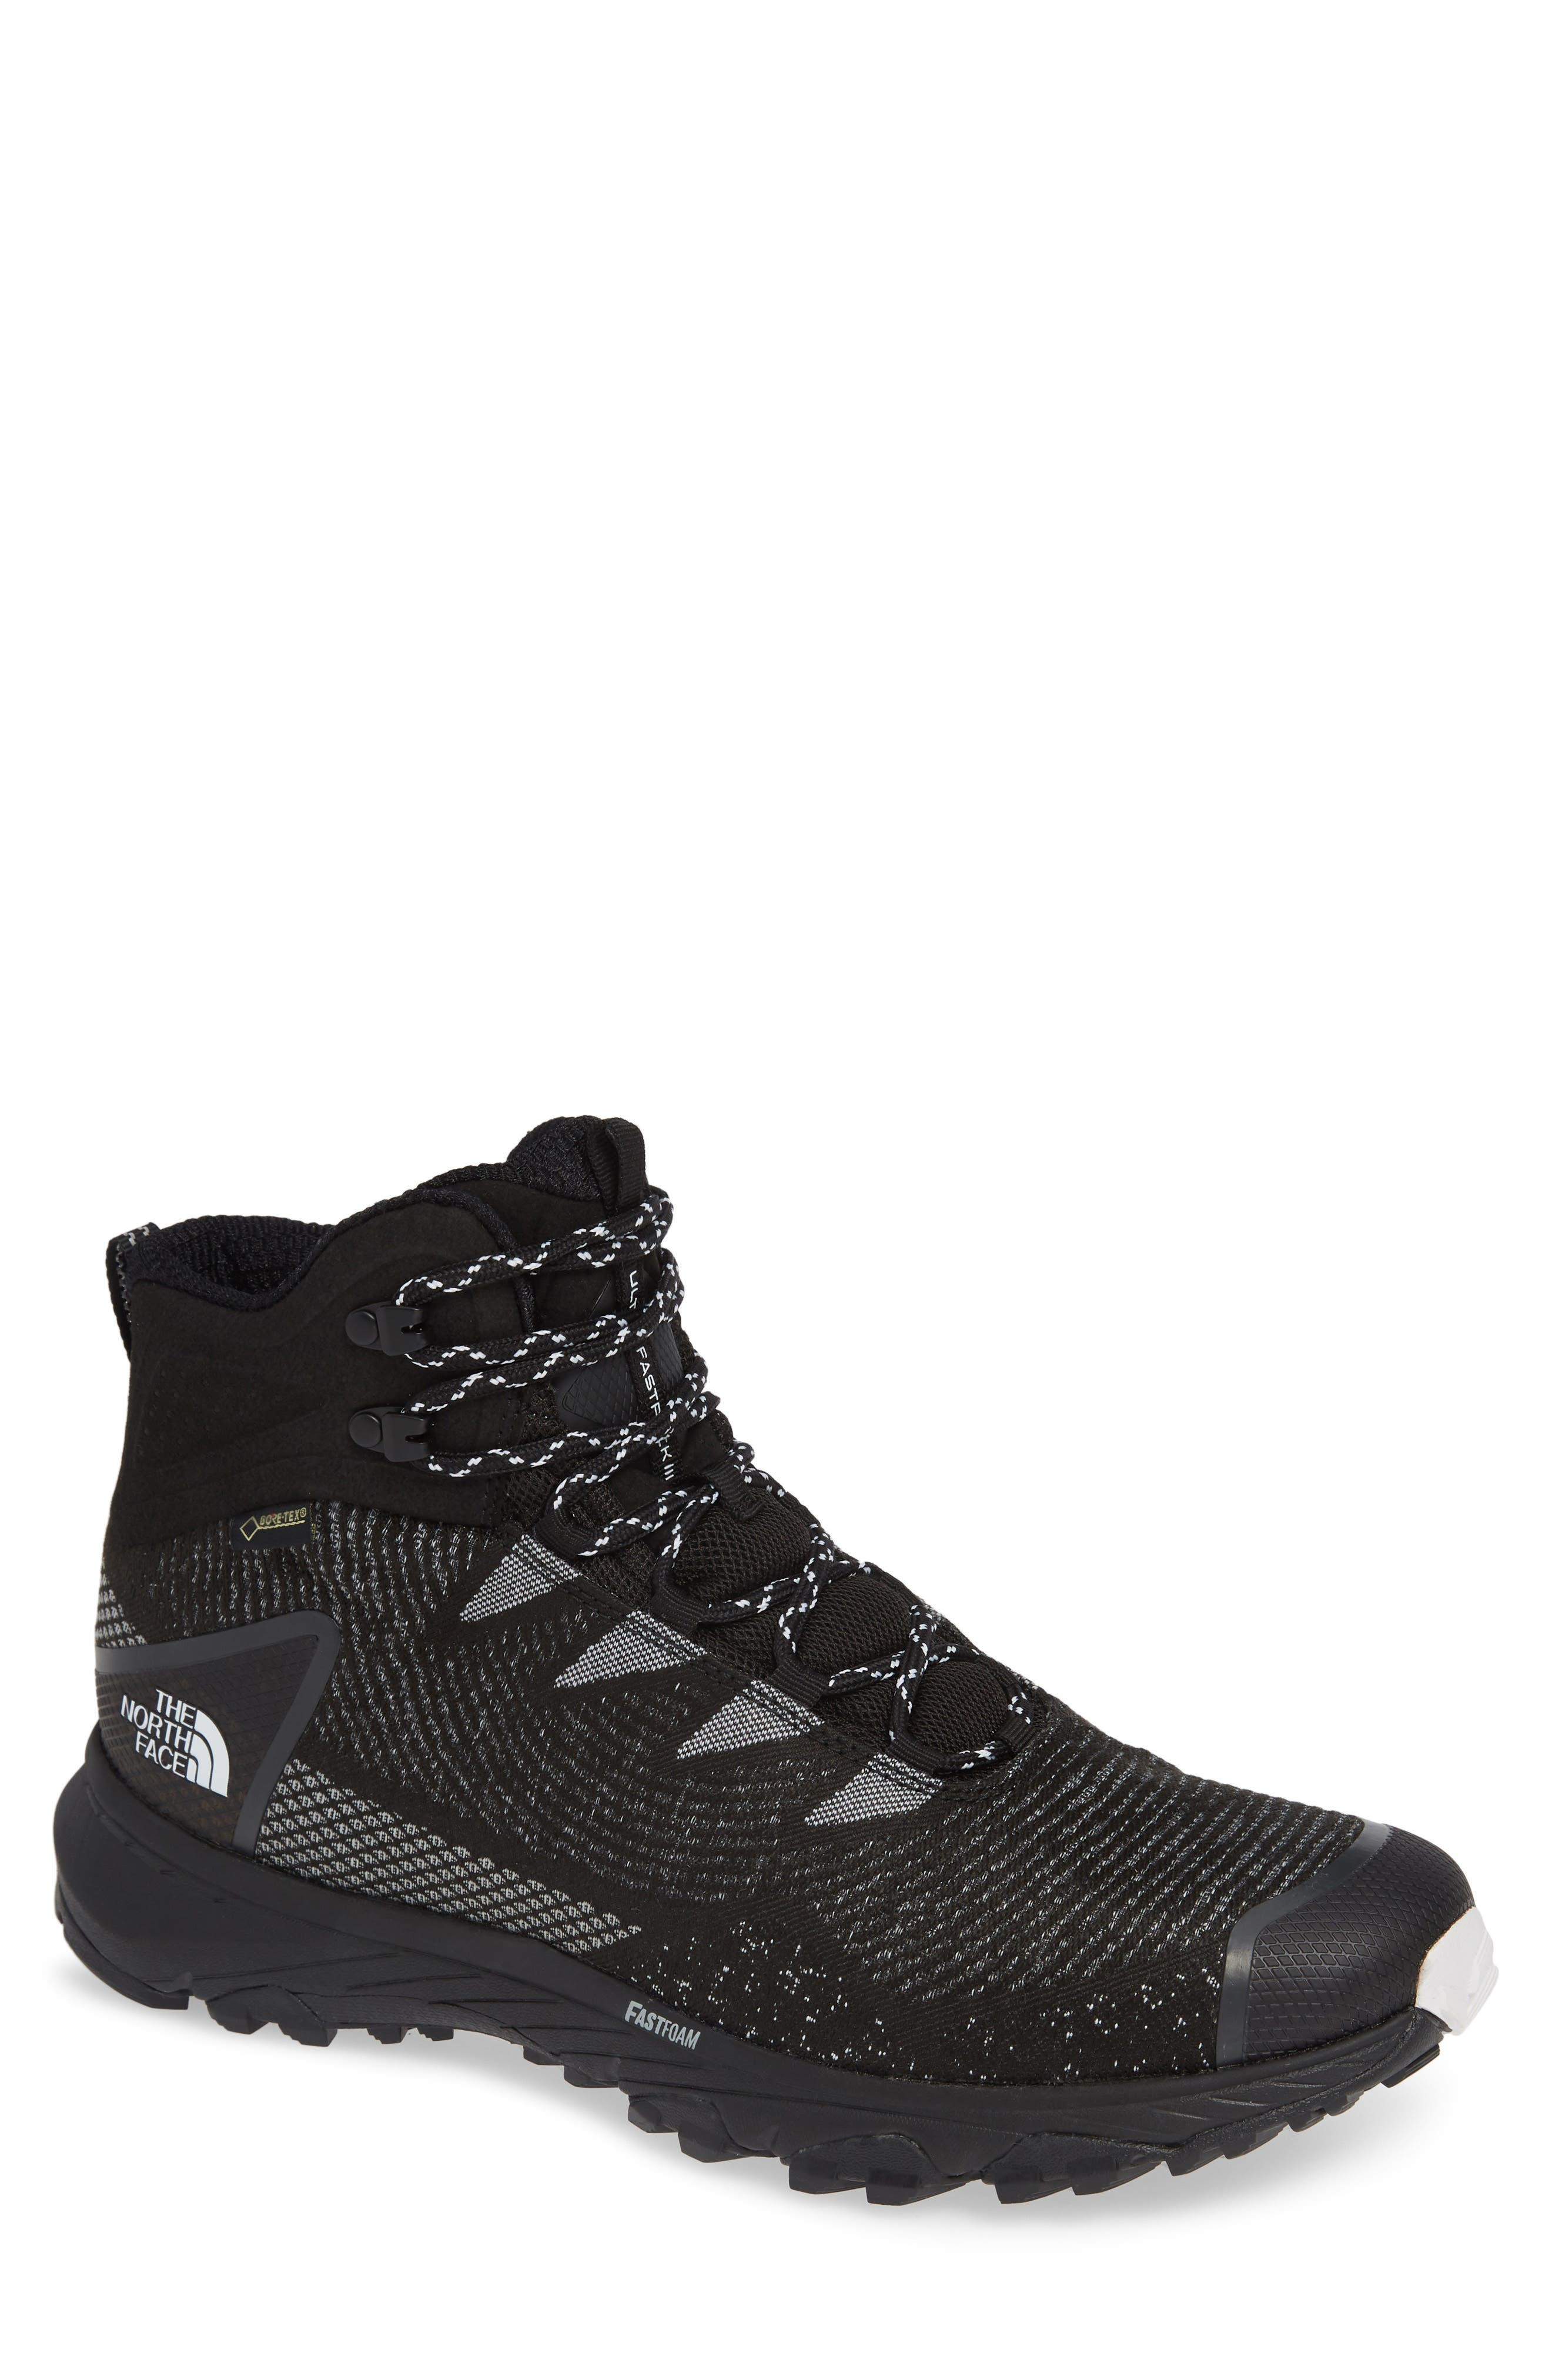 The North Face Ultra Fastpack Iii Mid Gore-Tex Hiking Boot, Black